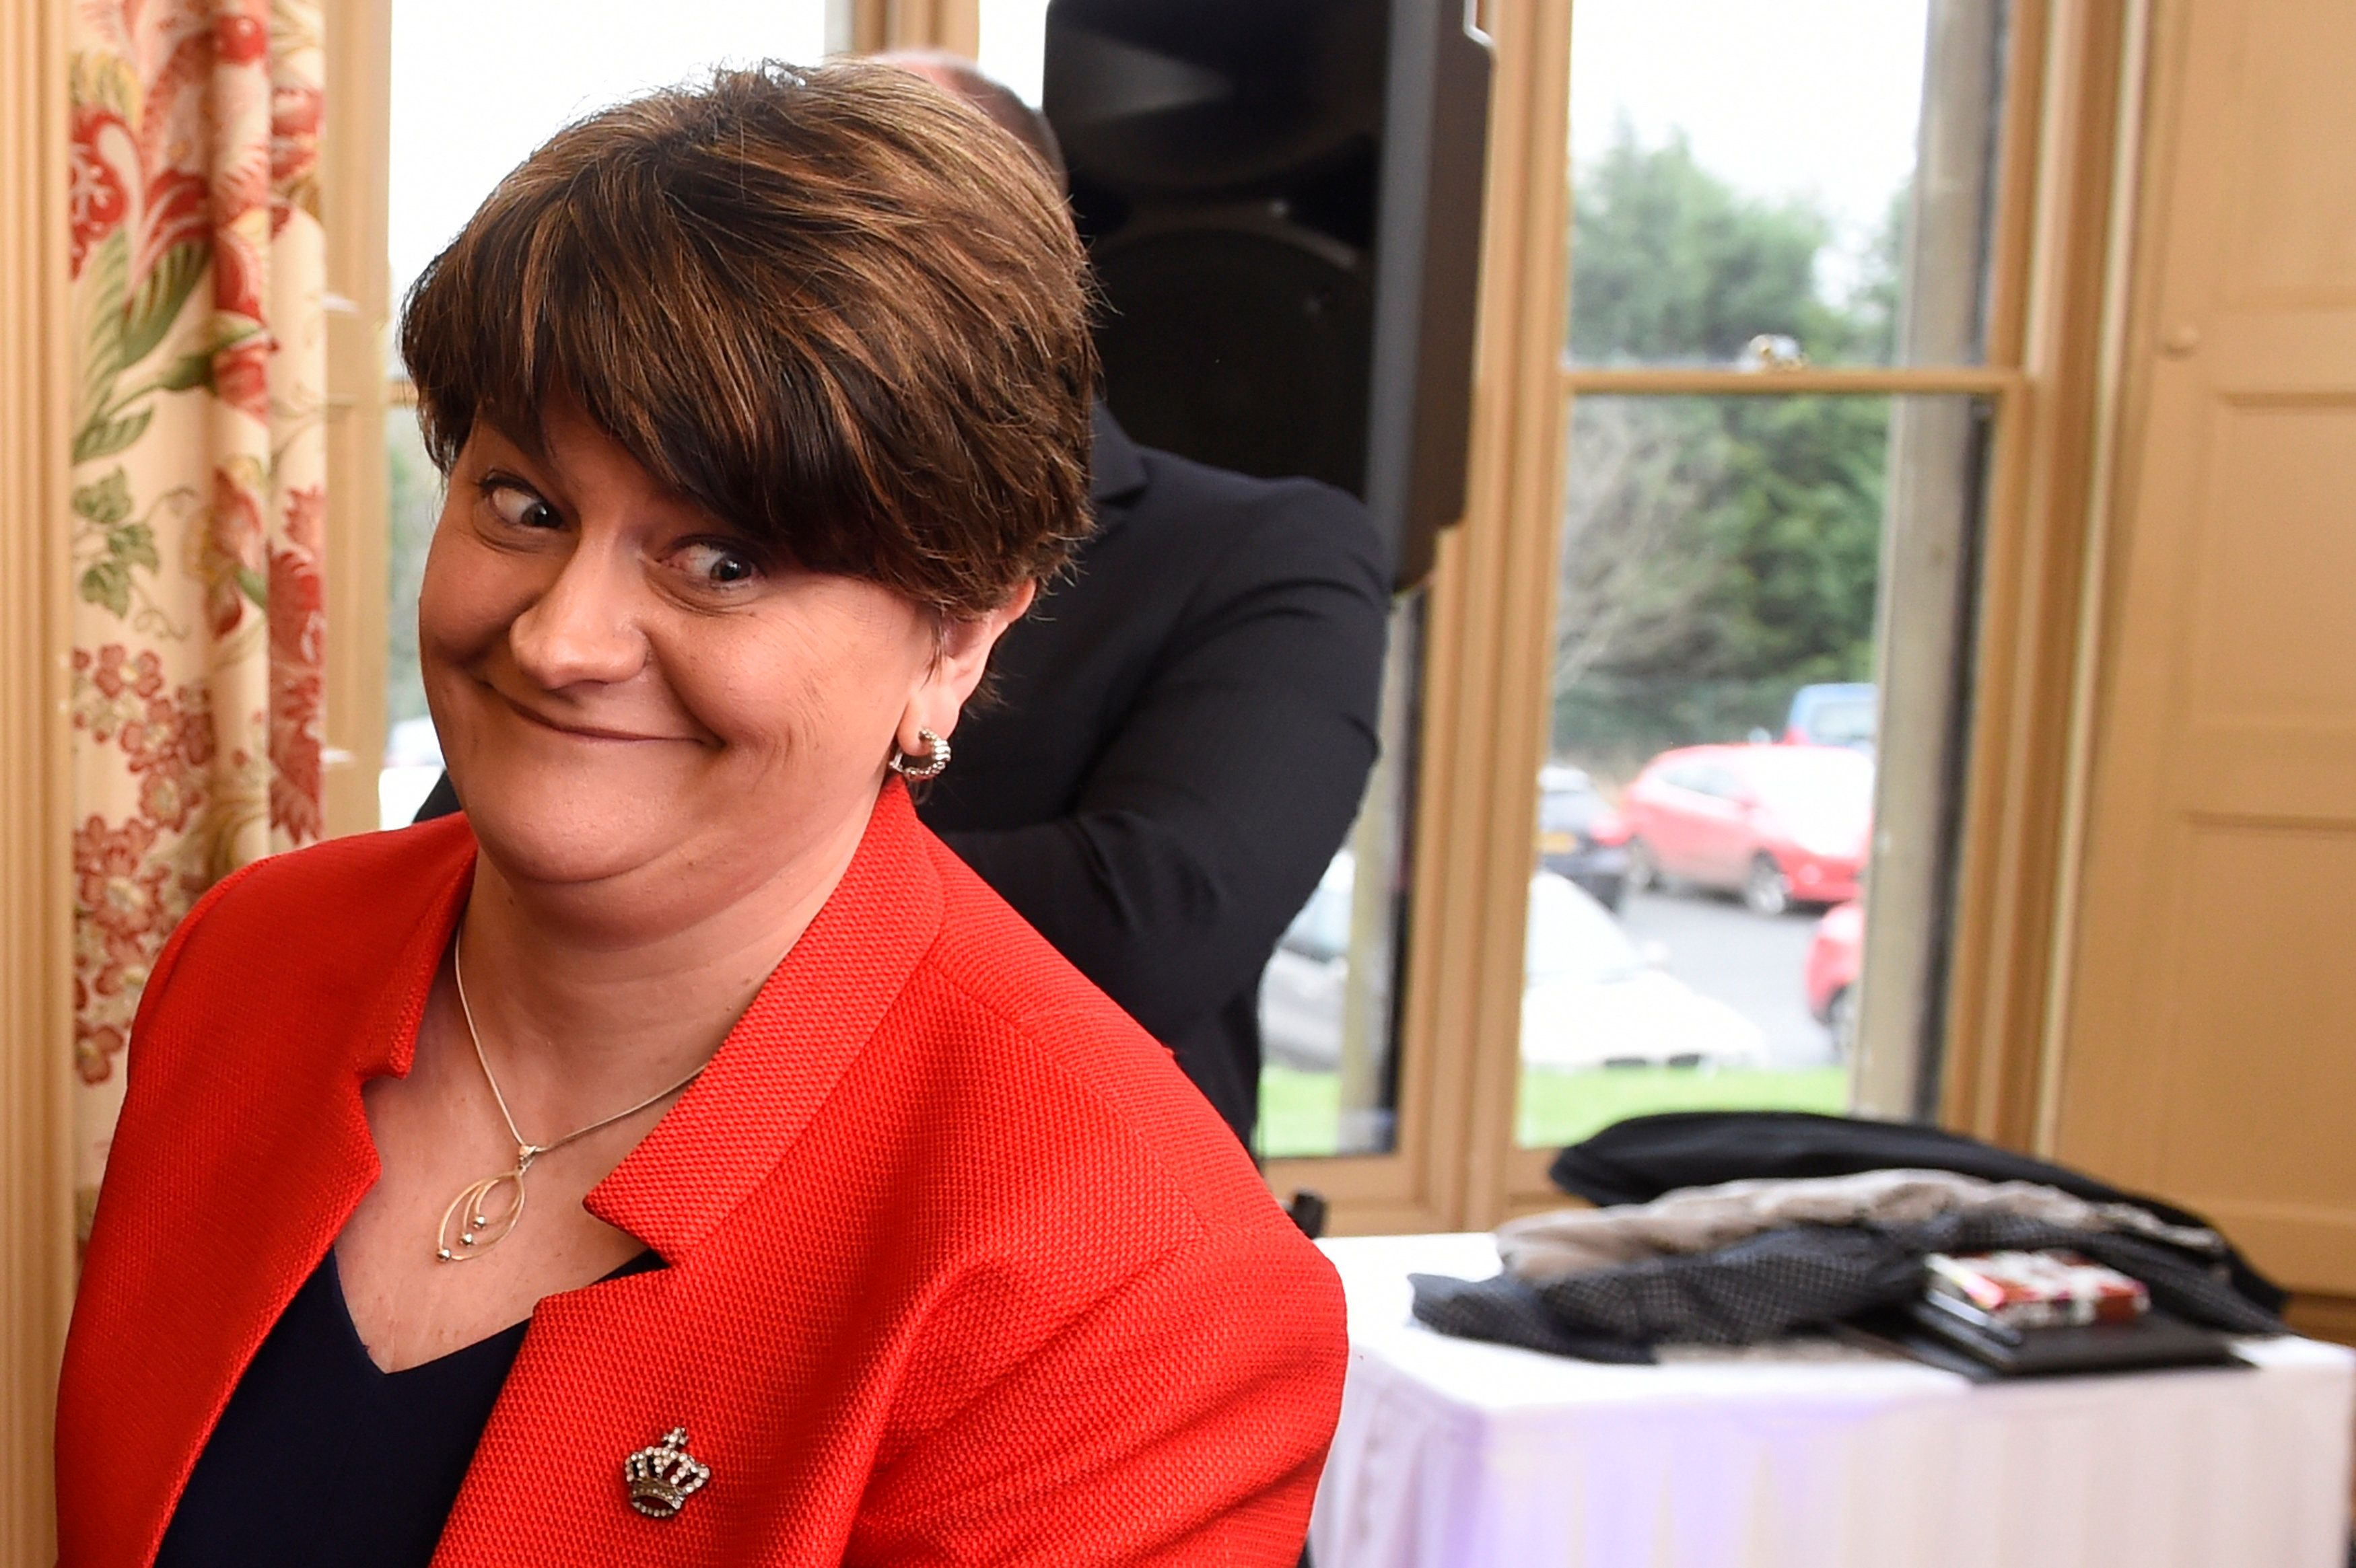 7 Times The DUP Has Done Something Batsh*t